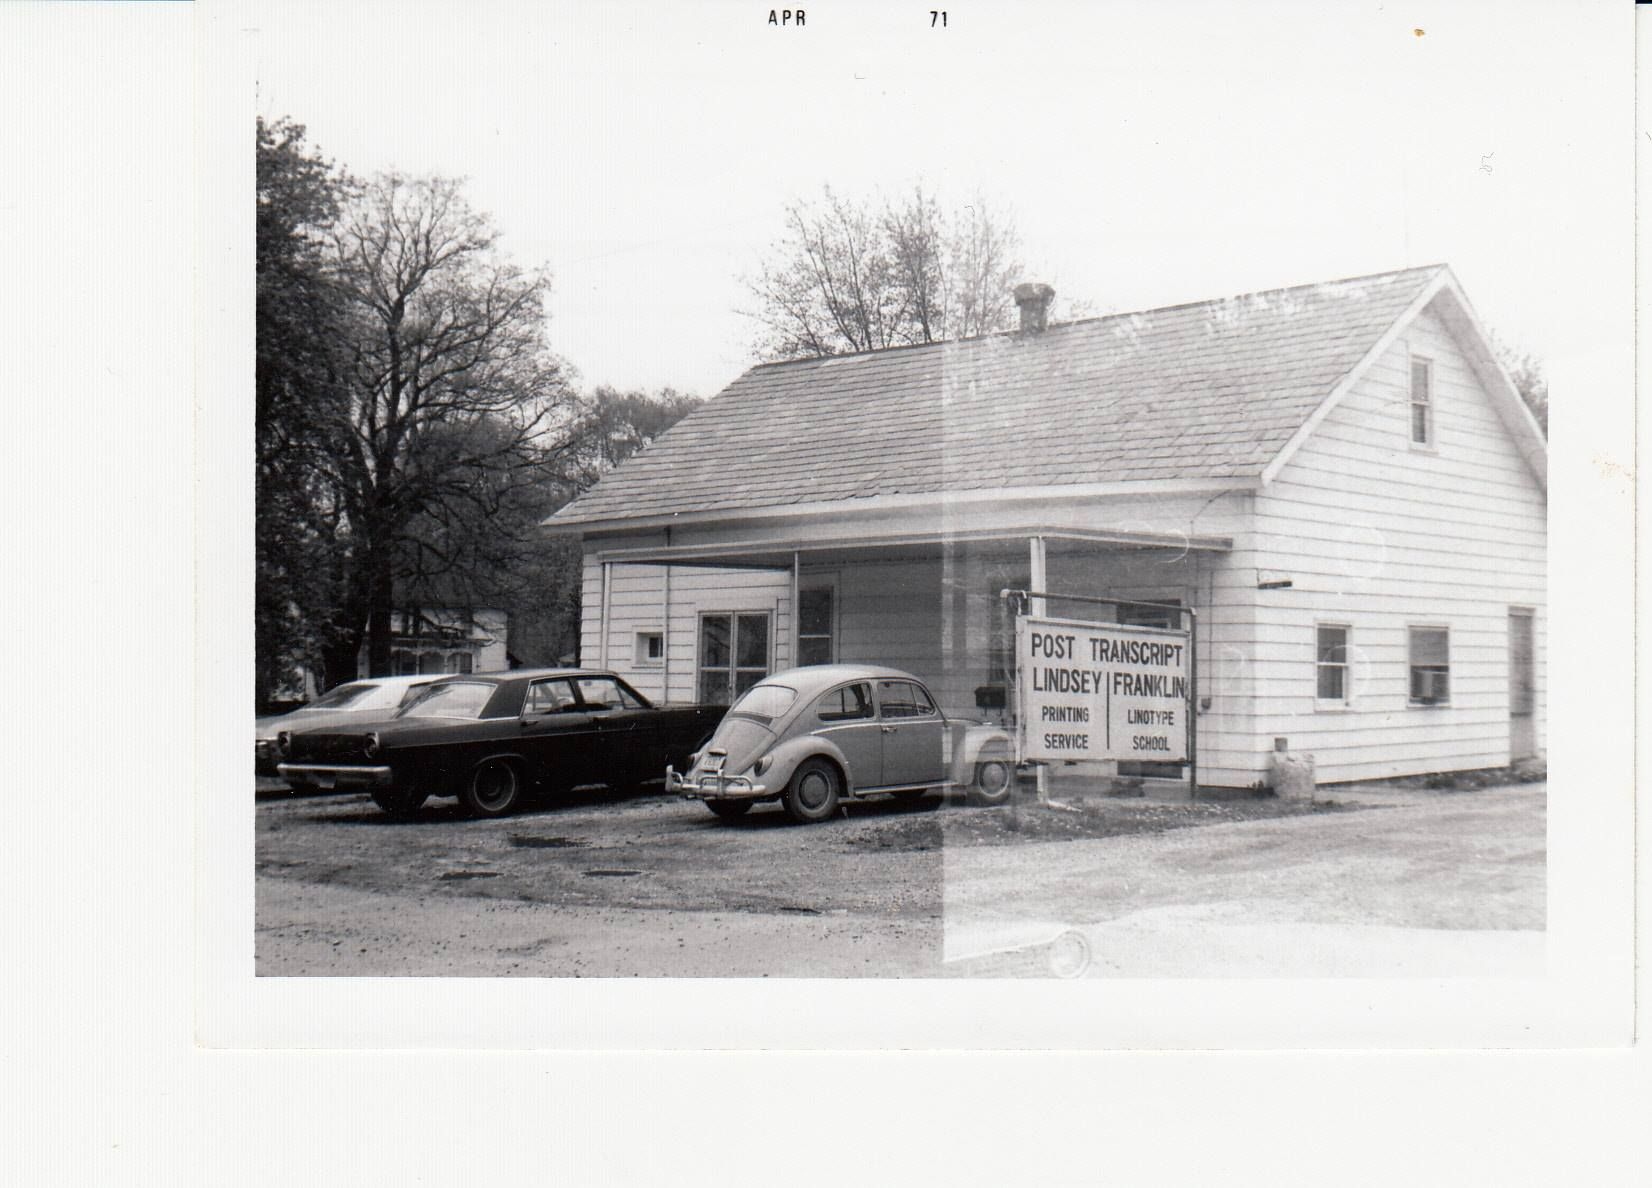 Pin By Trudy Harper On Historic Photos From Dresden Ohio Historical Photos Places Photo